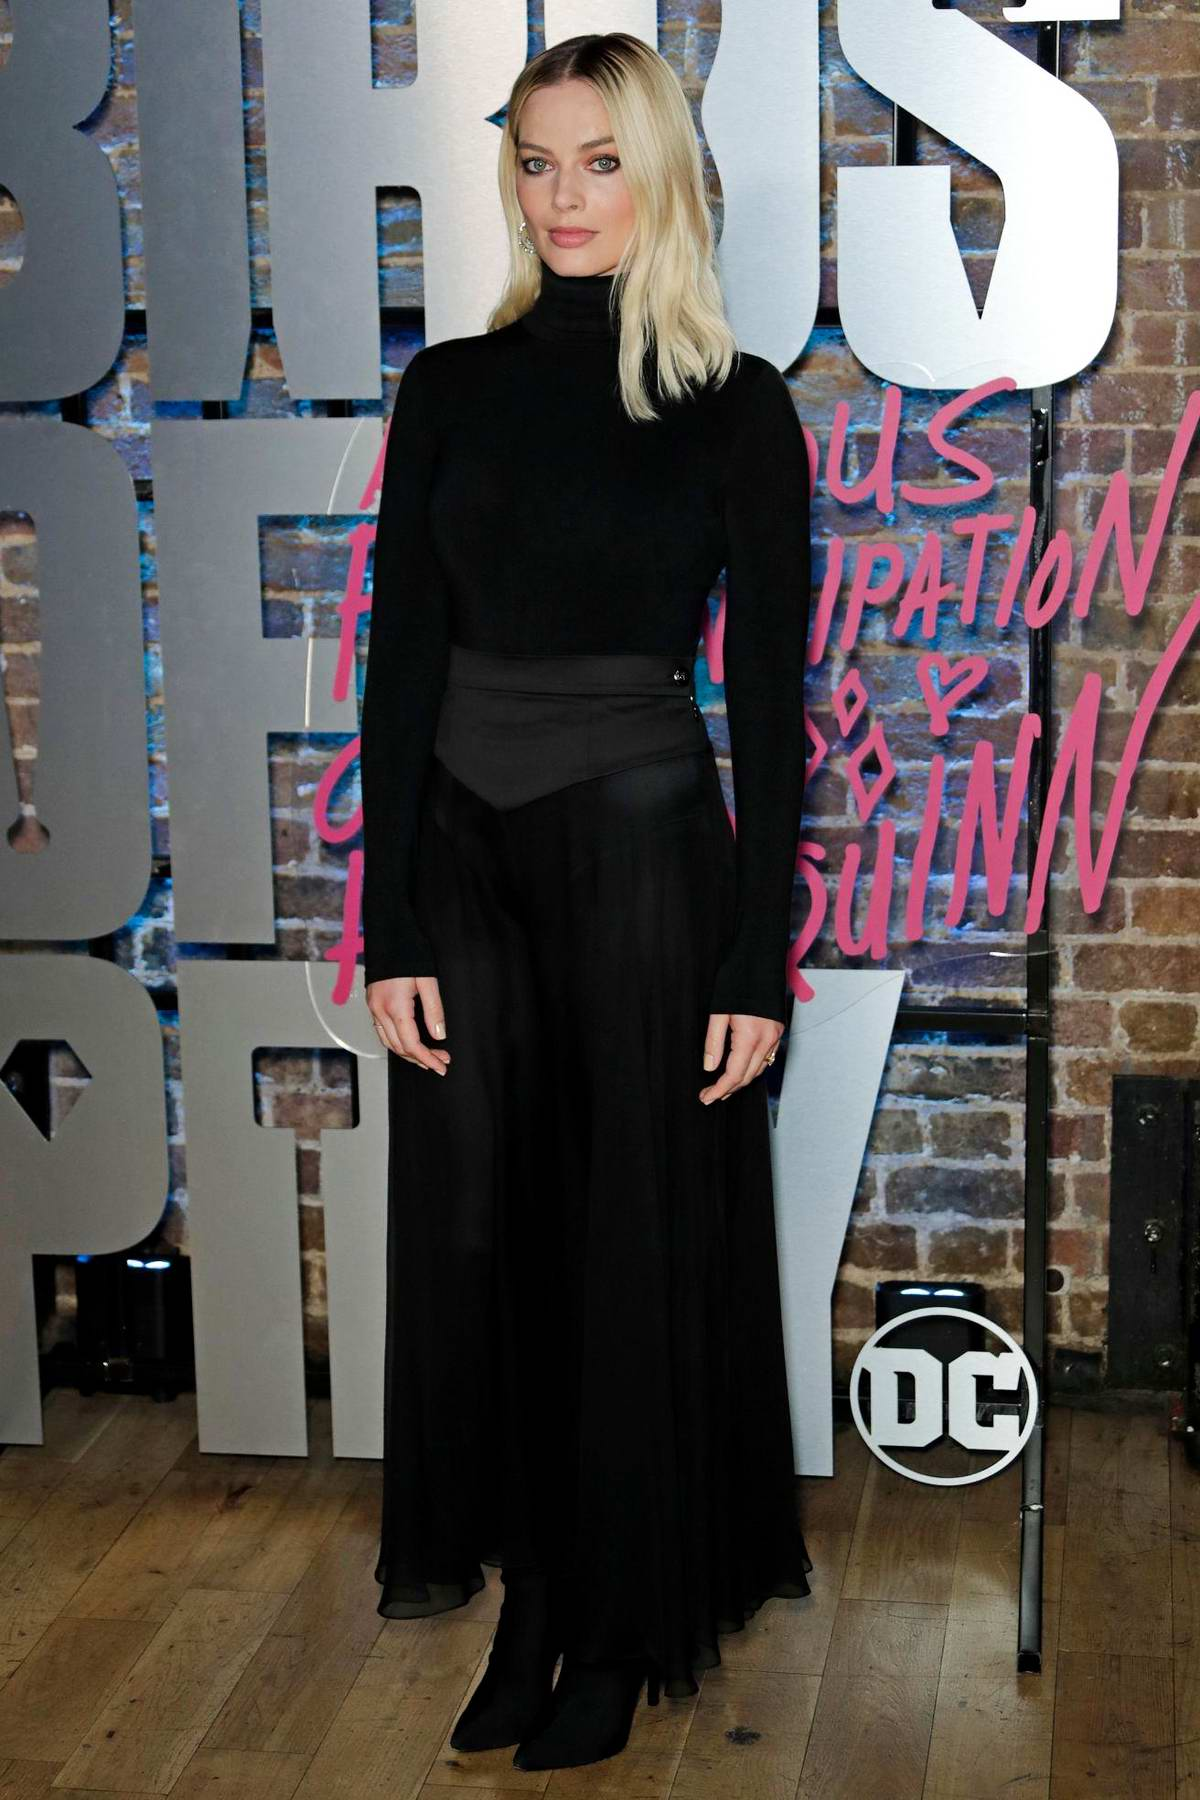 Margot Robbie attends Harley Quinn's Pop Up Roller Disco in London, UK